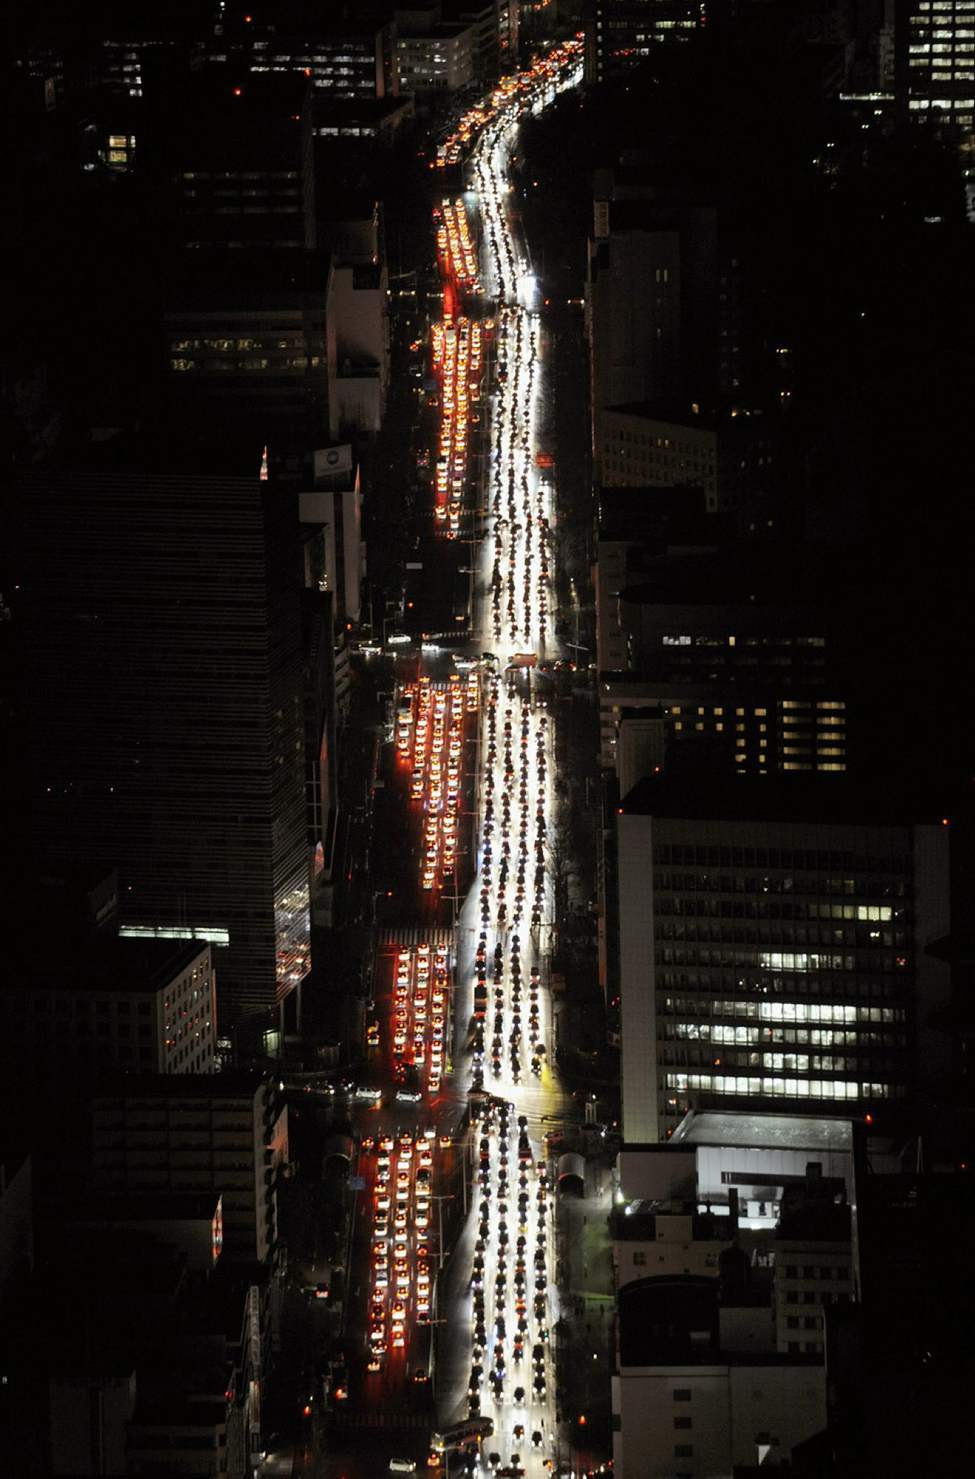 Traffic is jammed on a road in Sendai city, Miyagi prefecture (state), Japan, after a powerful earthquake, the largest in Japan's recorded history slammed the eastern coasts Friday, March 11, 2011.  (AP Photo/Kyodo News)